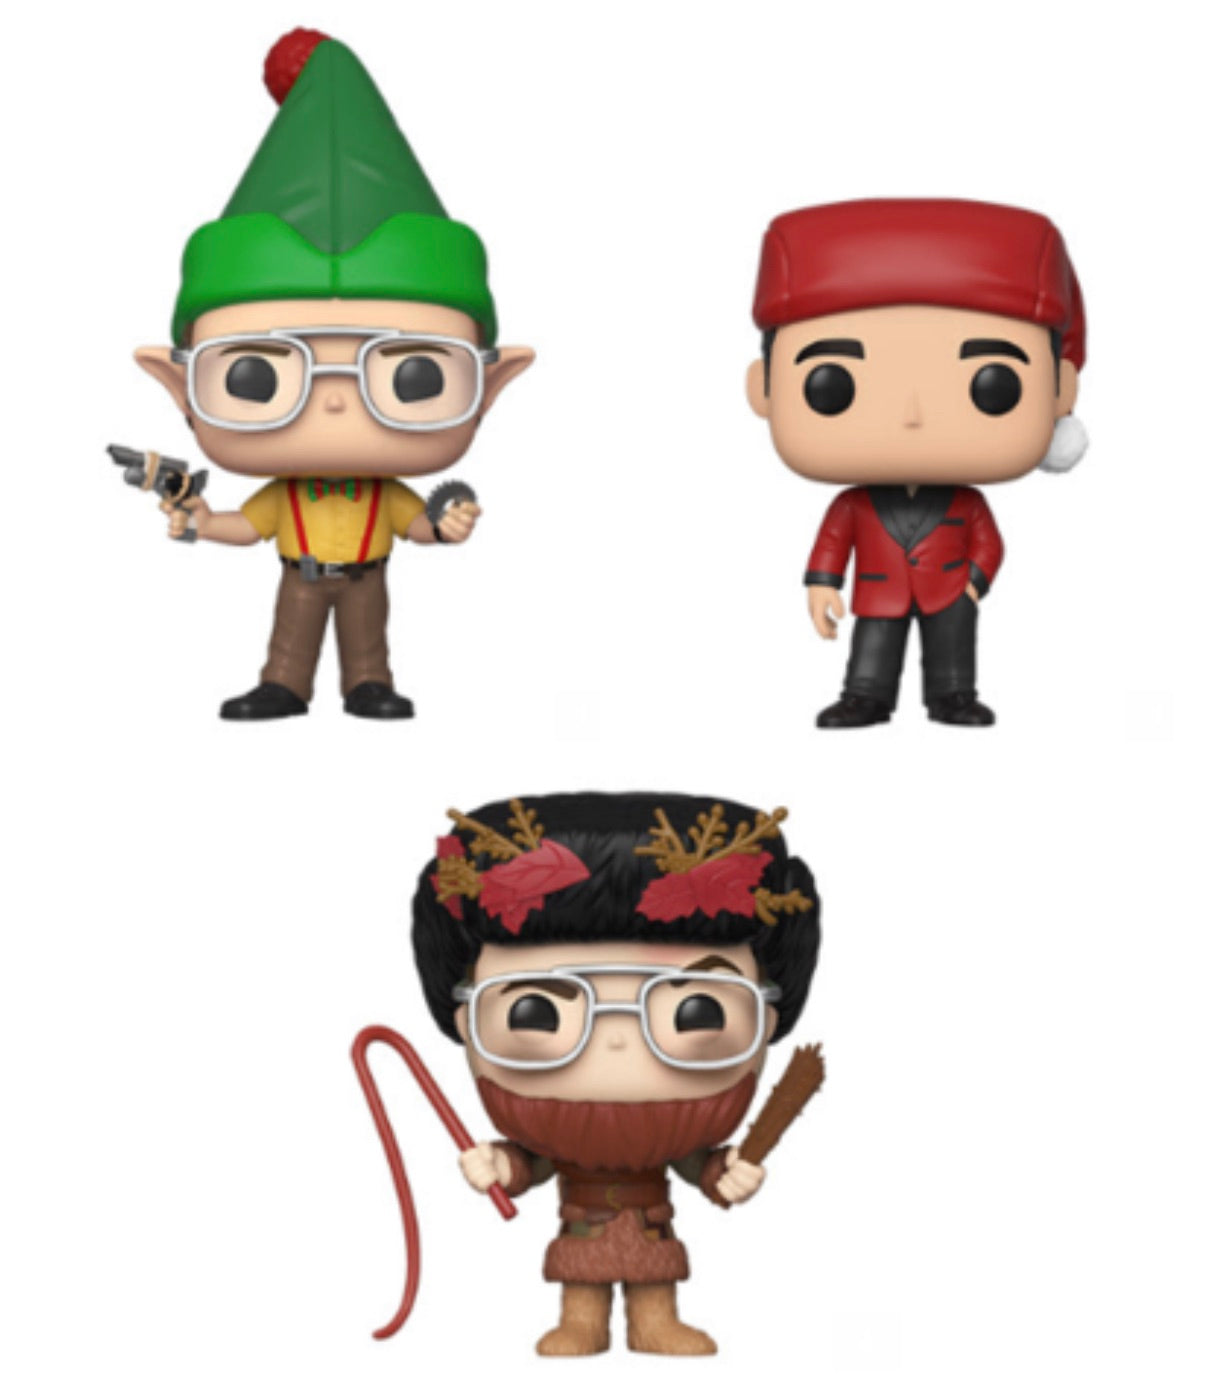 THE OFFICE HOLIDAY FUNKO POP! COMPLETE SET OF 3 (PRE-ORDER)